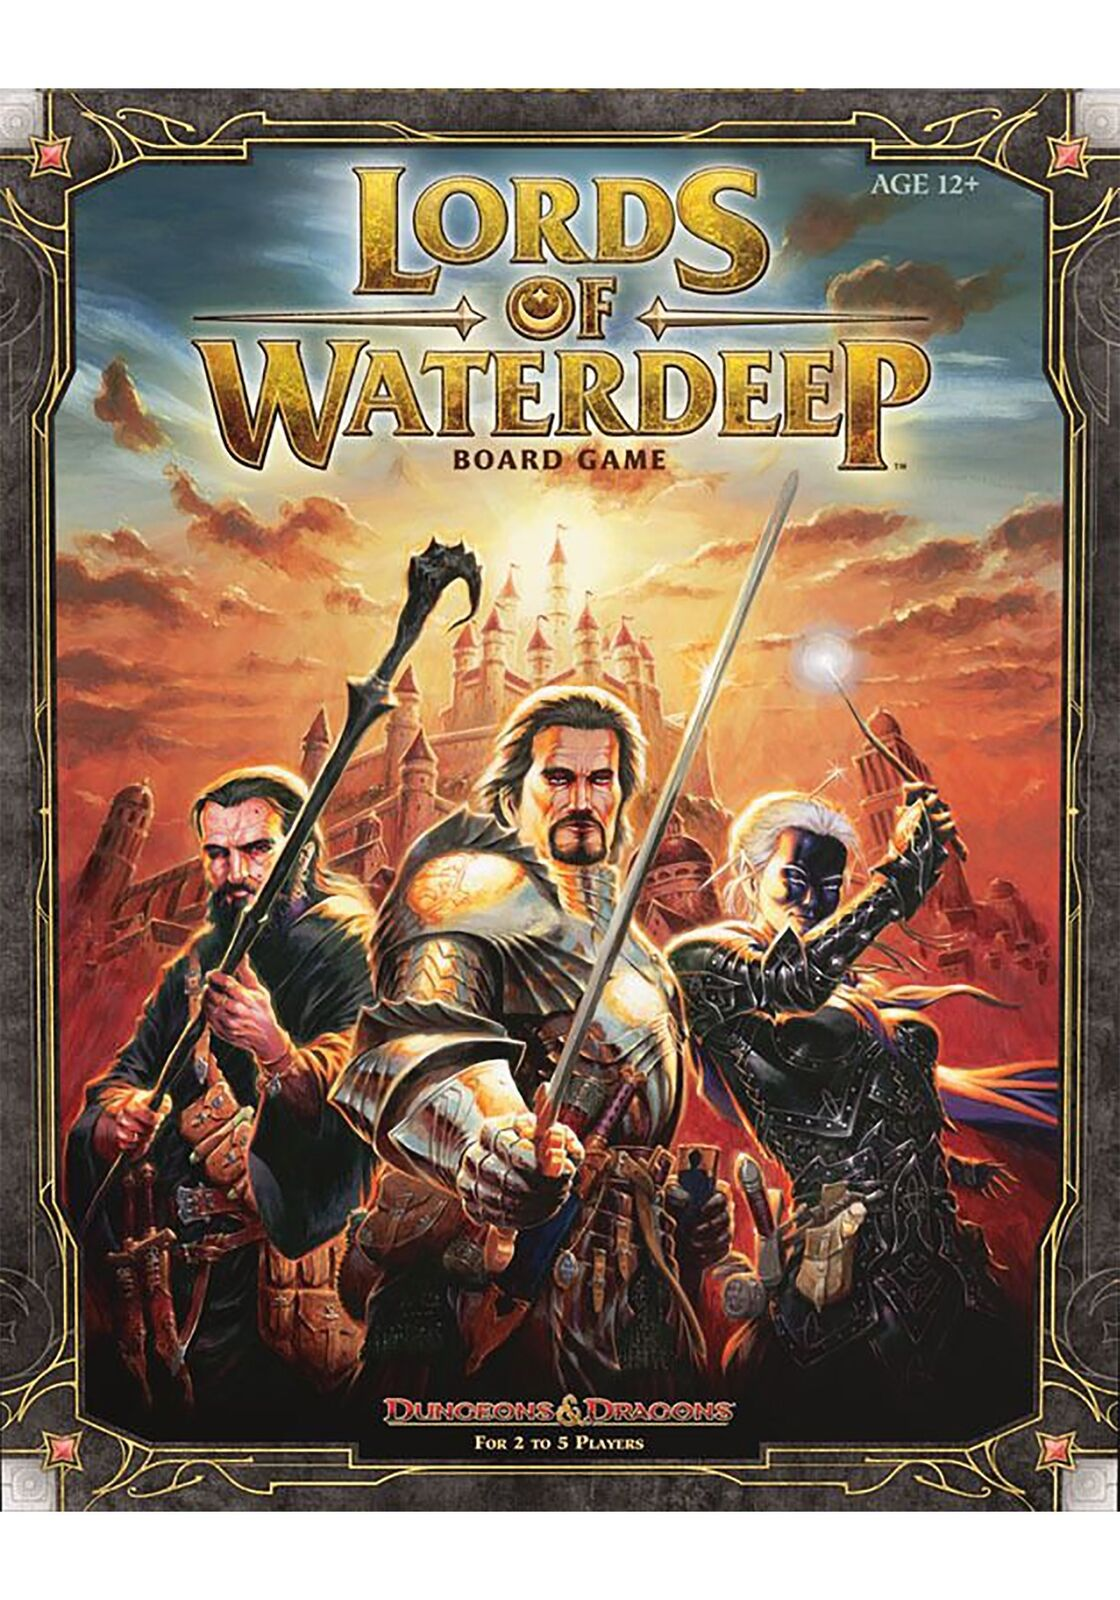 Dungeons Dungeons Dungeons e Dragons  Lords of Waterdeep tavola gioco 4f6428